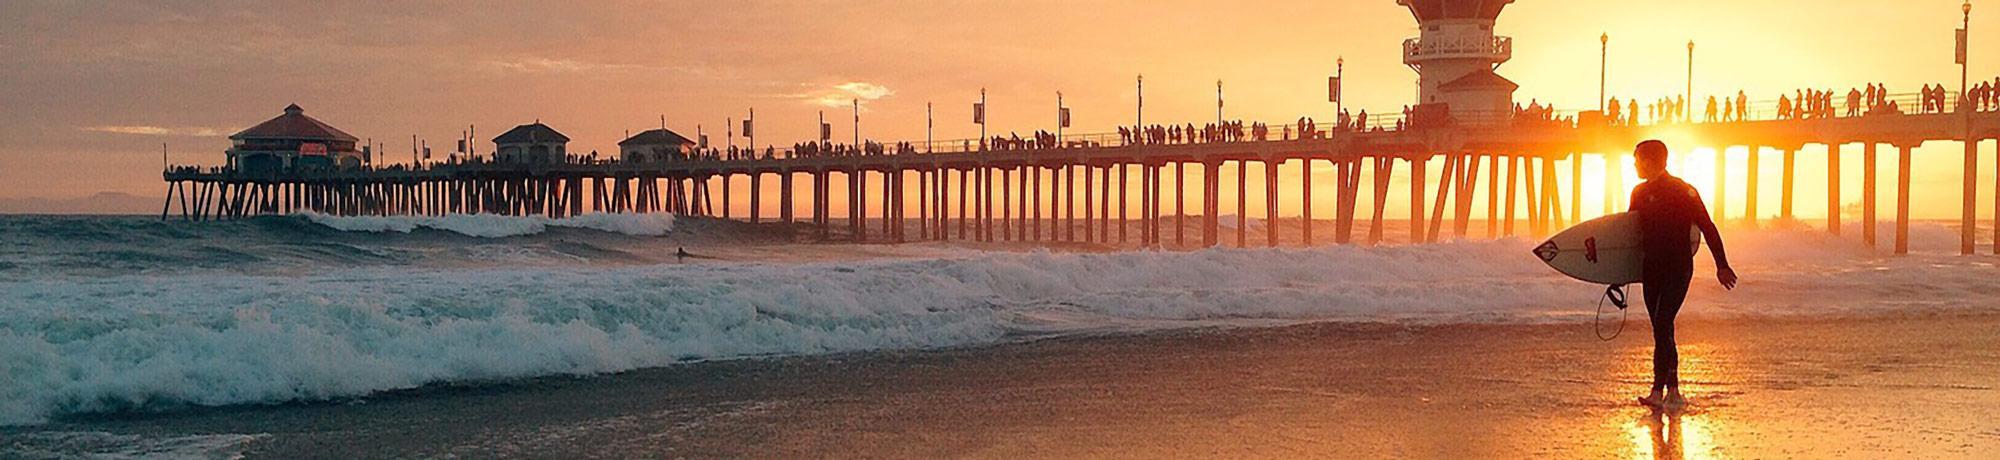 Pier in sunset